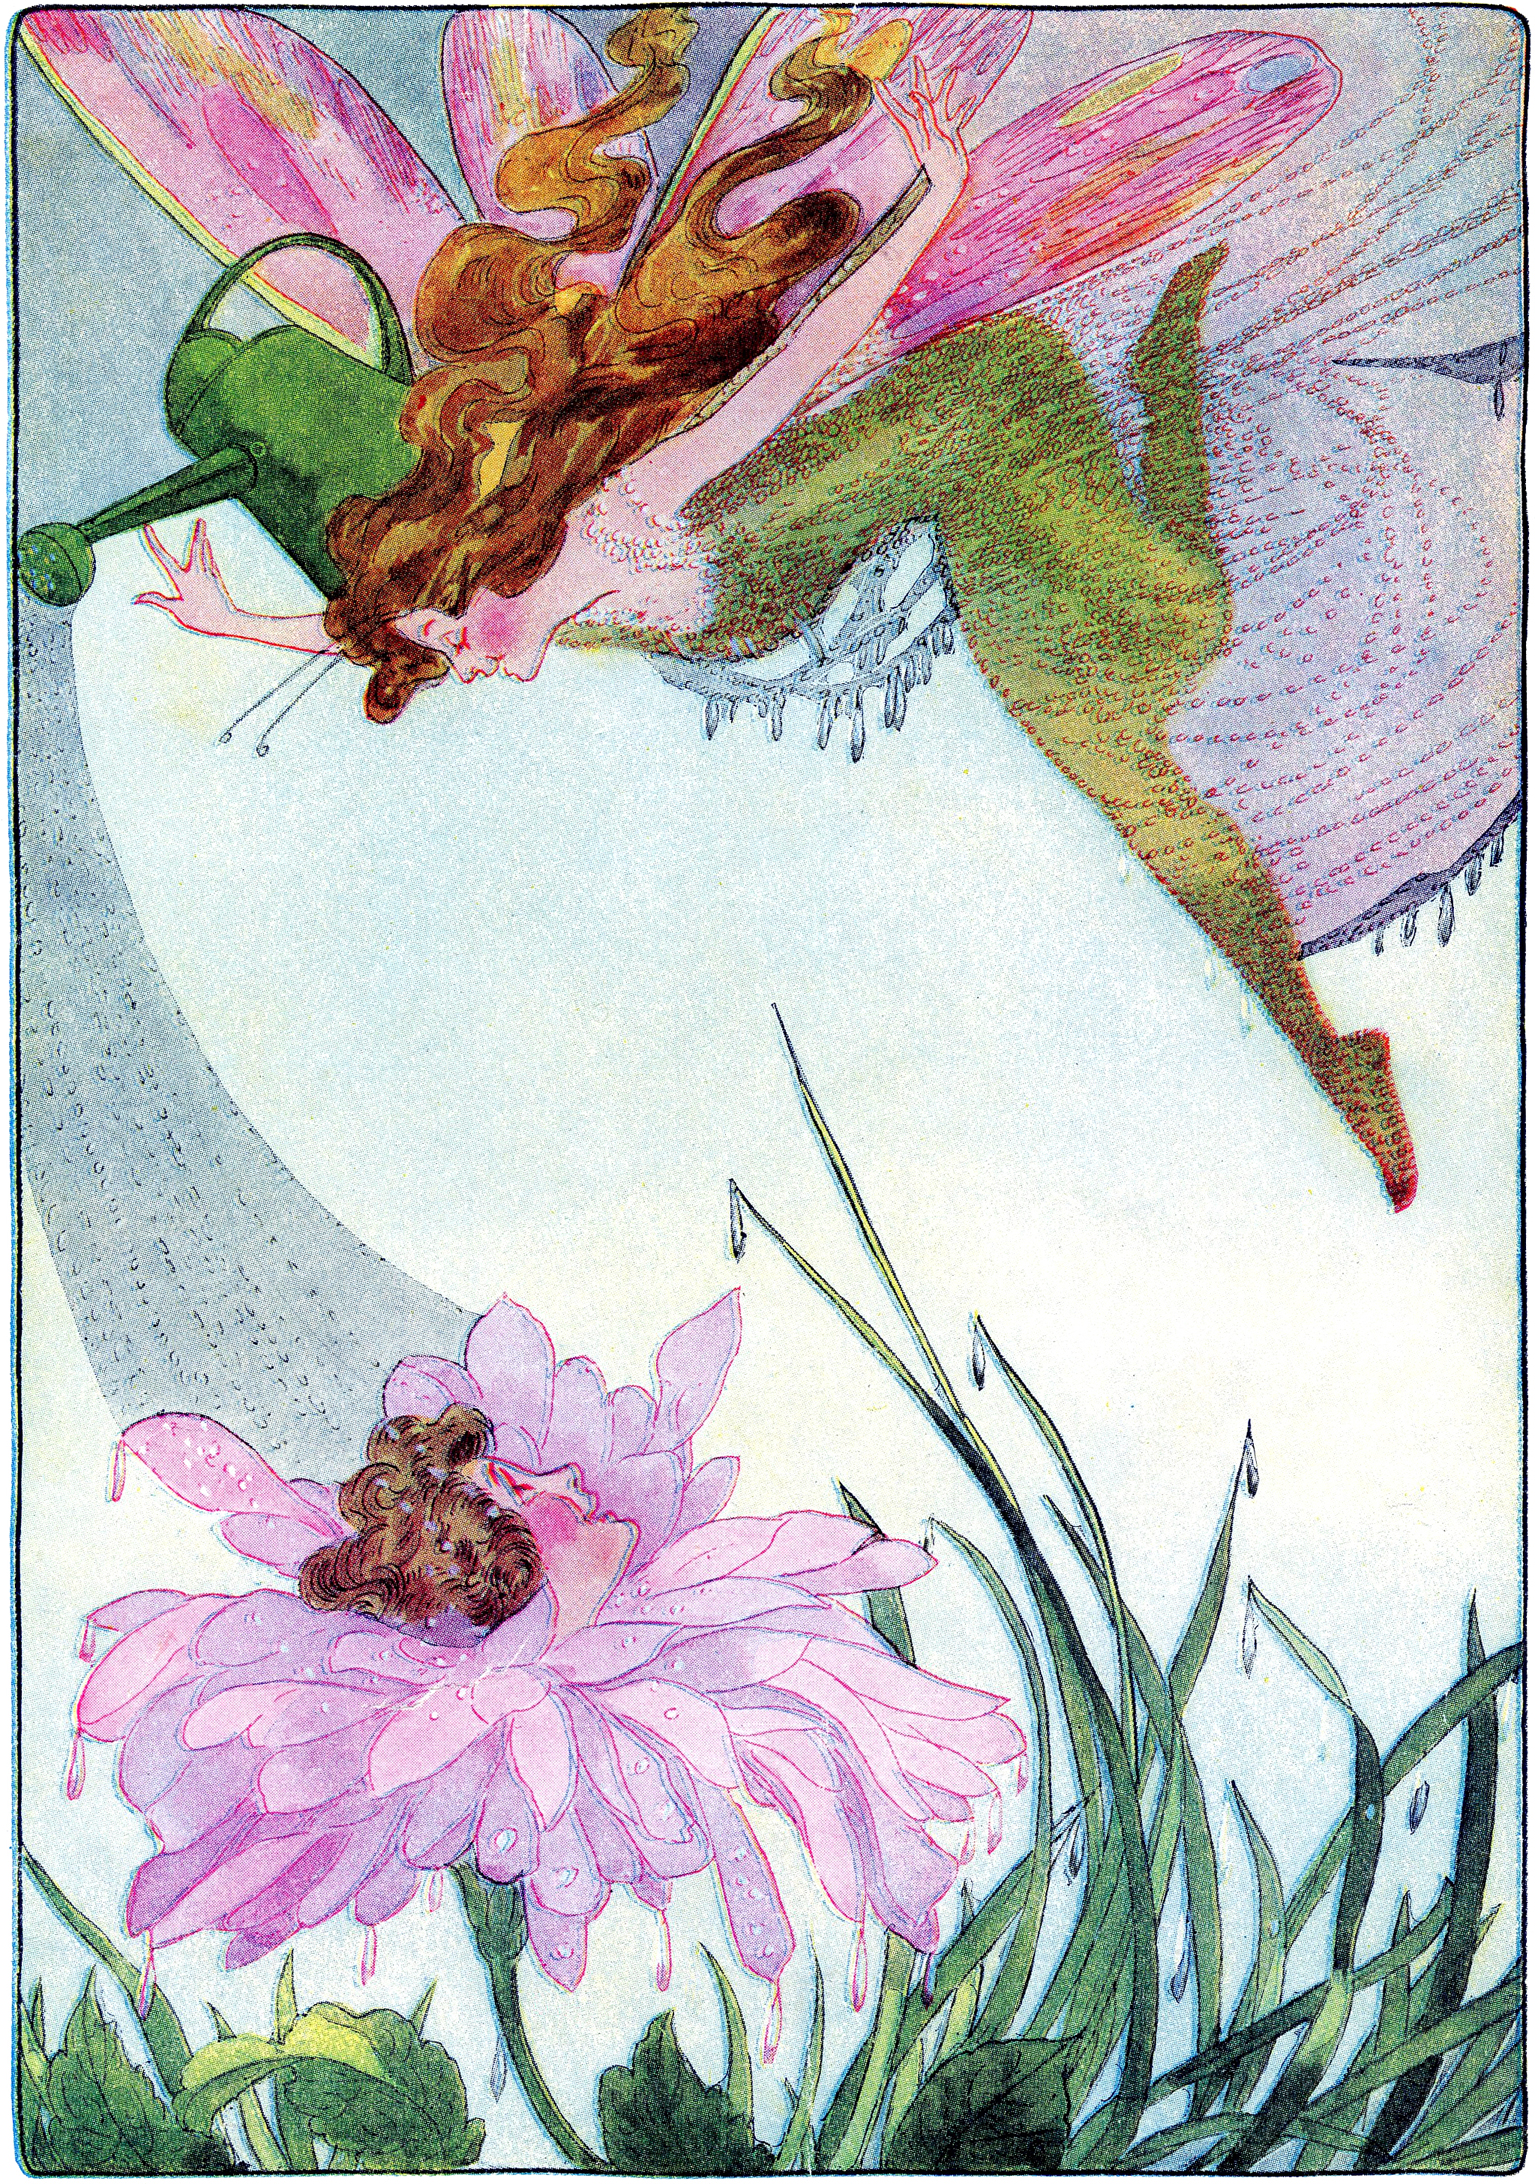 Garden Graphics Archives Page 3 of 9 The Graphics Fairy